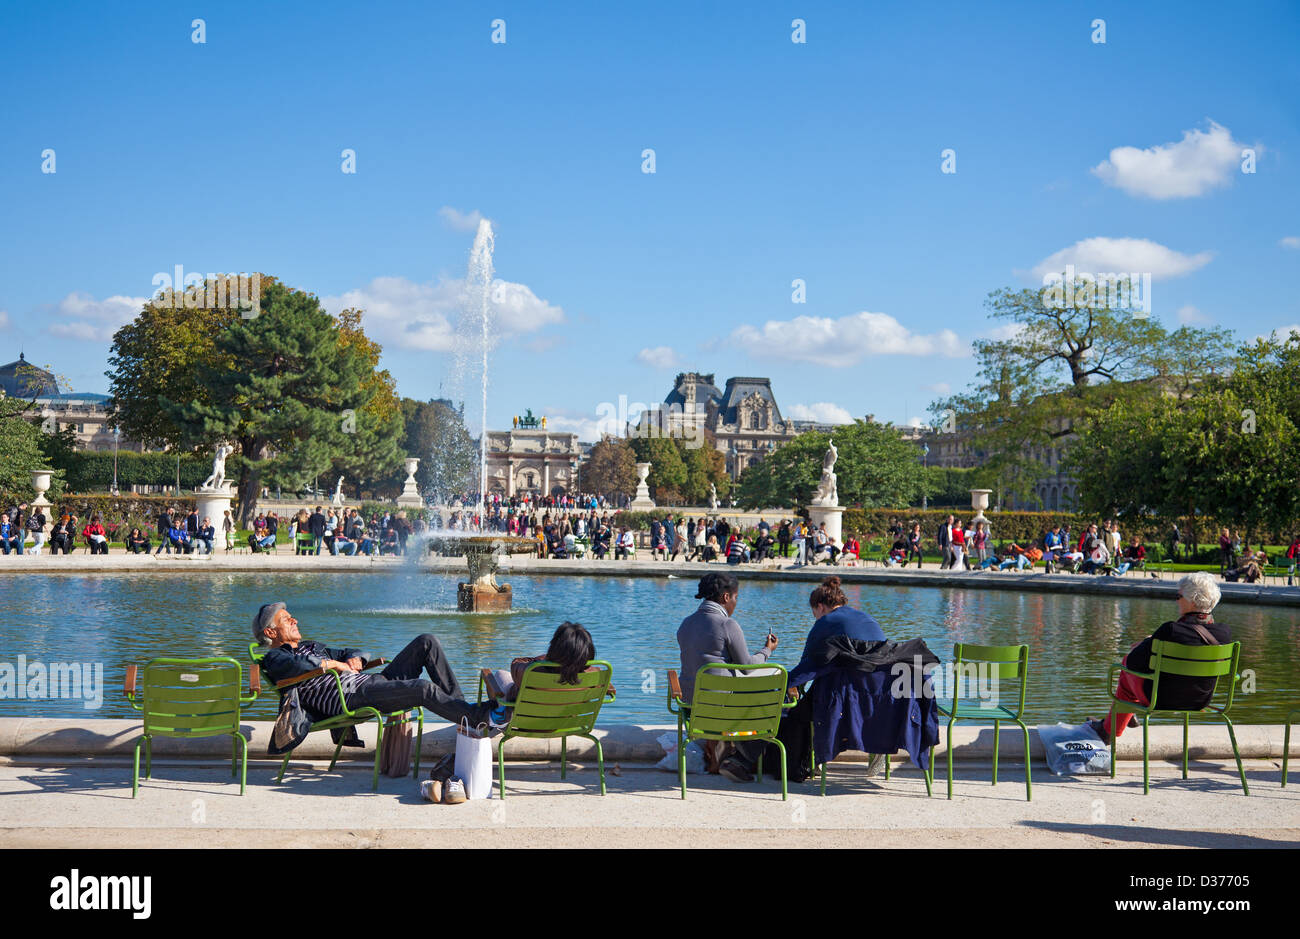 People enjoying some autumn sunshine around the edge of a pond: Jardin des Tuileries, Paris. Louvre museum in background. - Stock Image